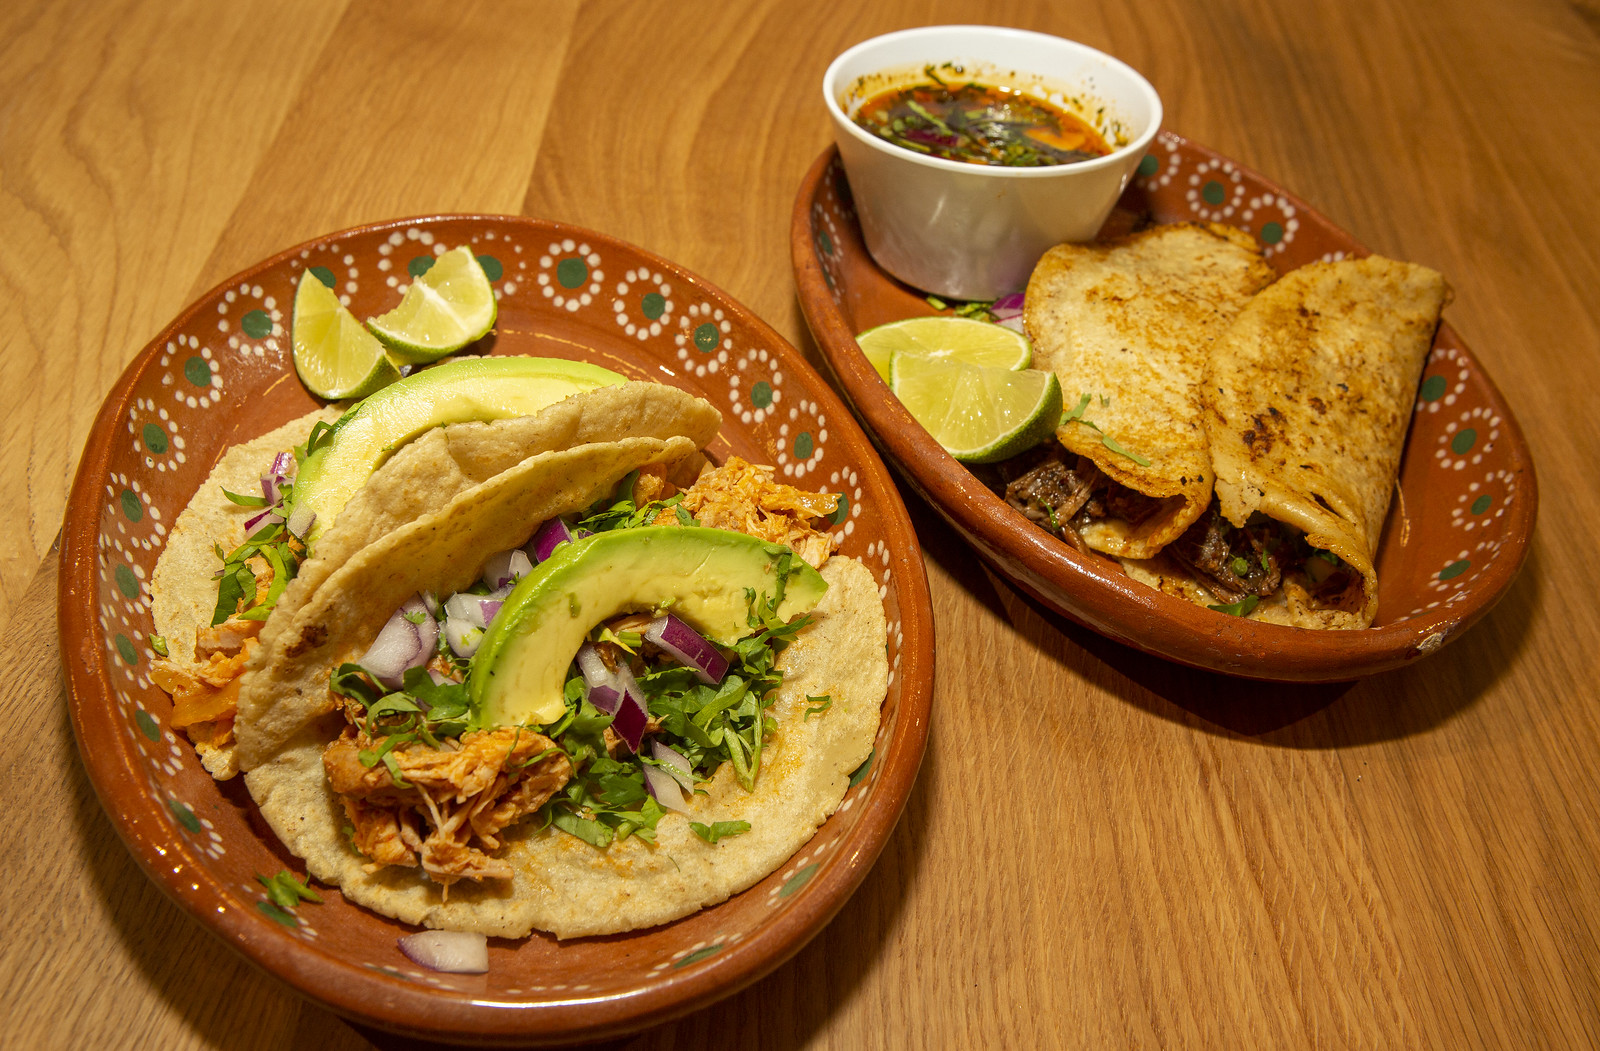 A plate of two tacos topped with avocado, next to a plate of quesabirria.